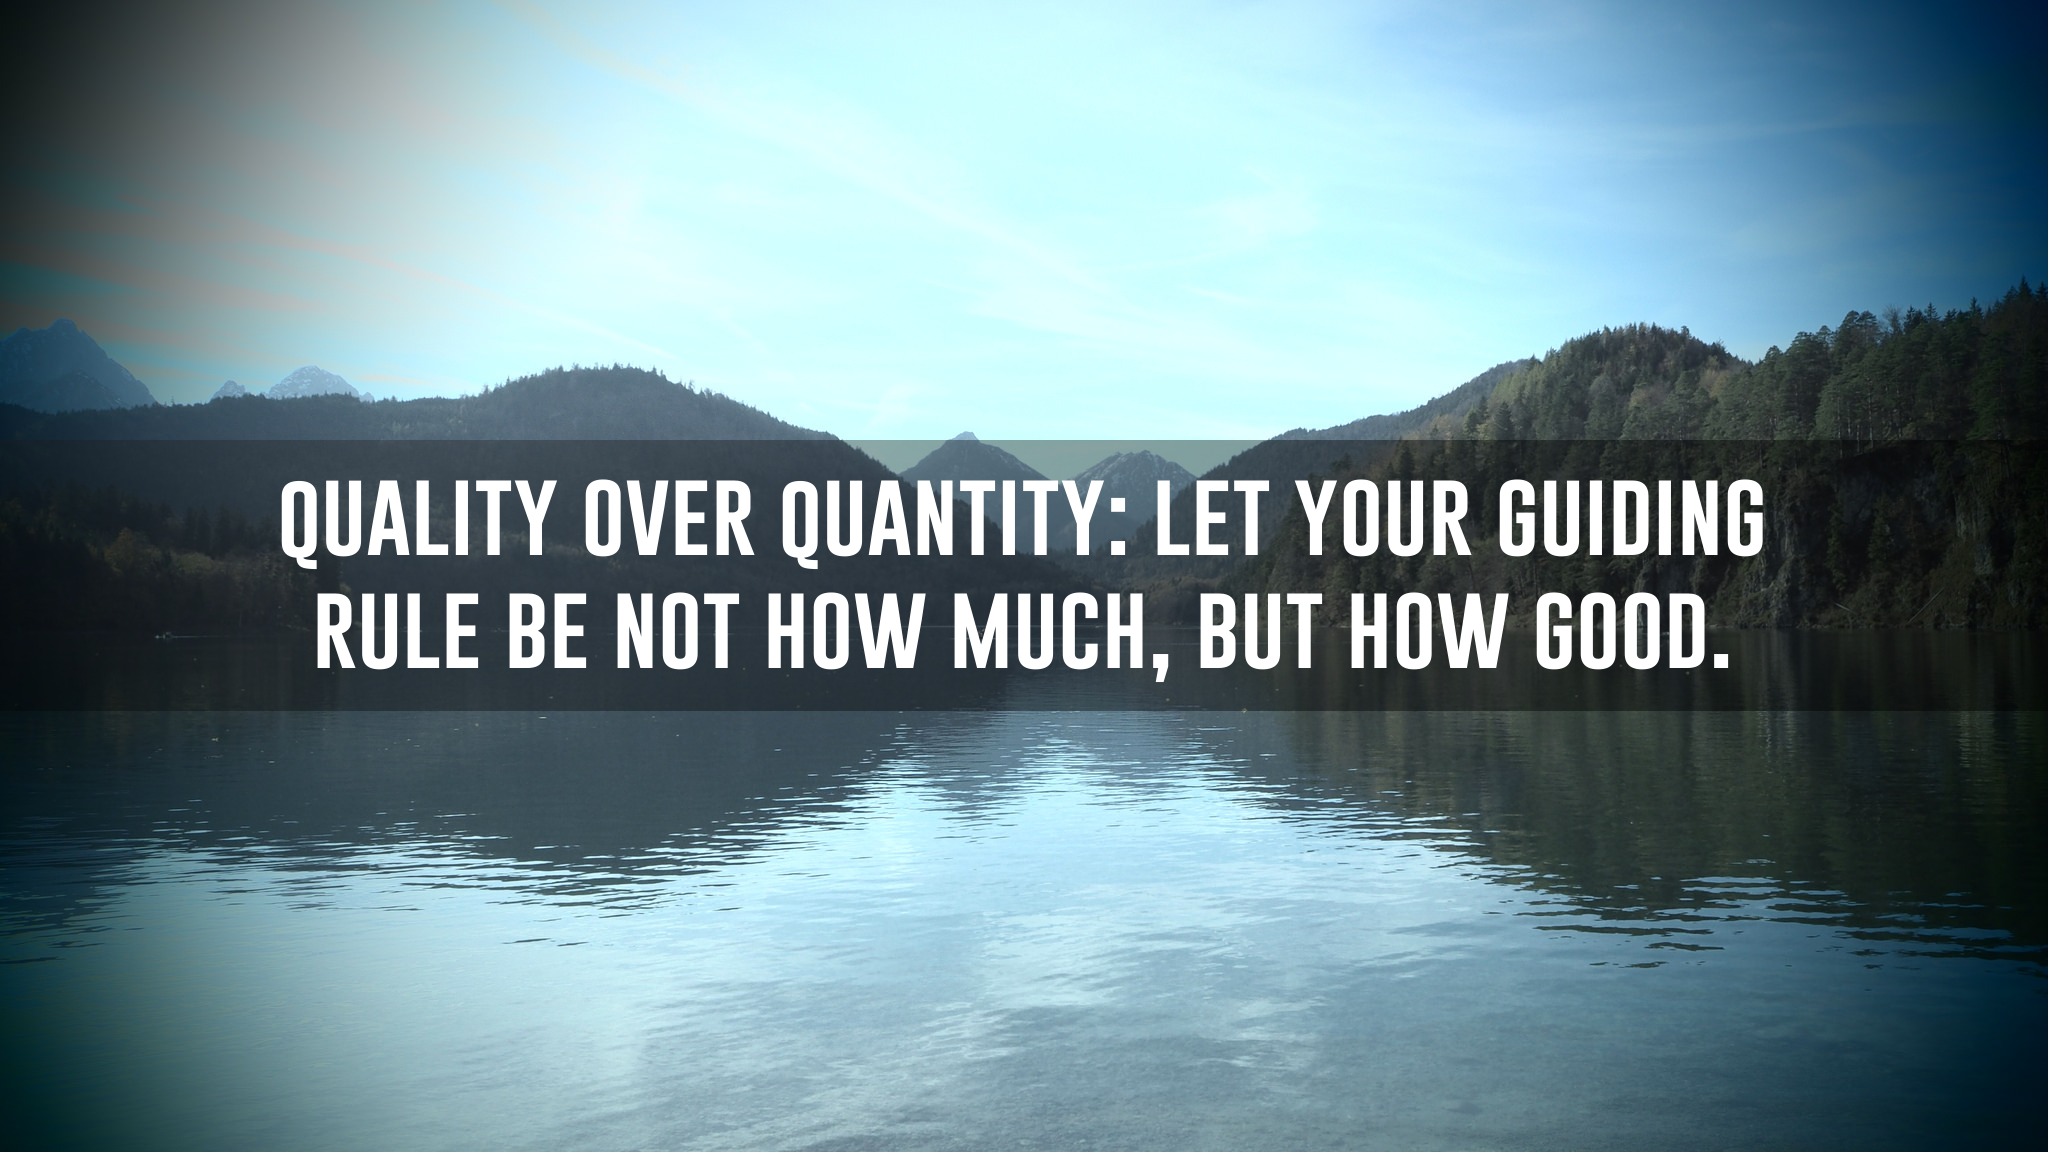 When You Are Buying Leads - It's Quality Over Quantity!